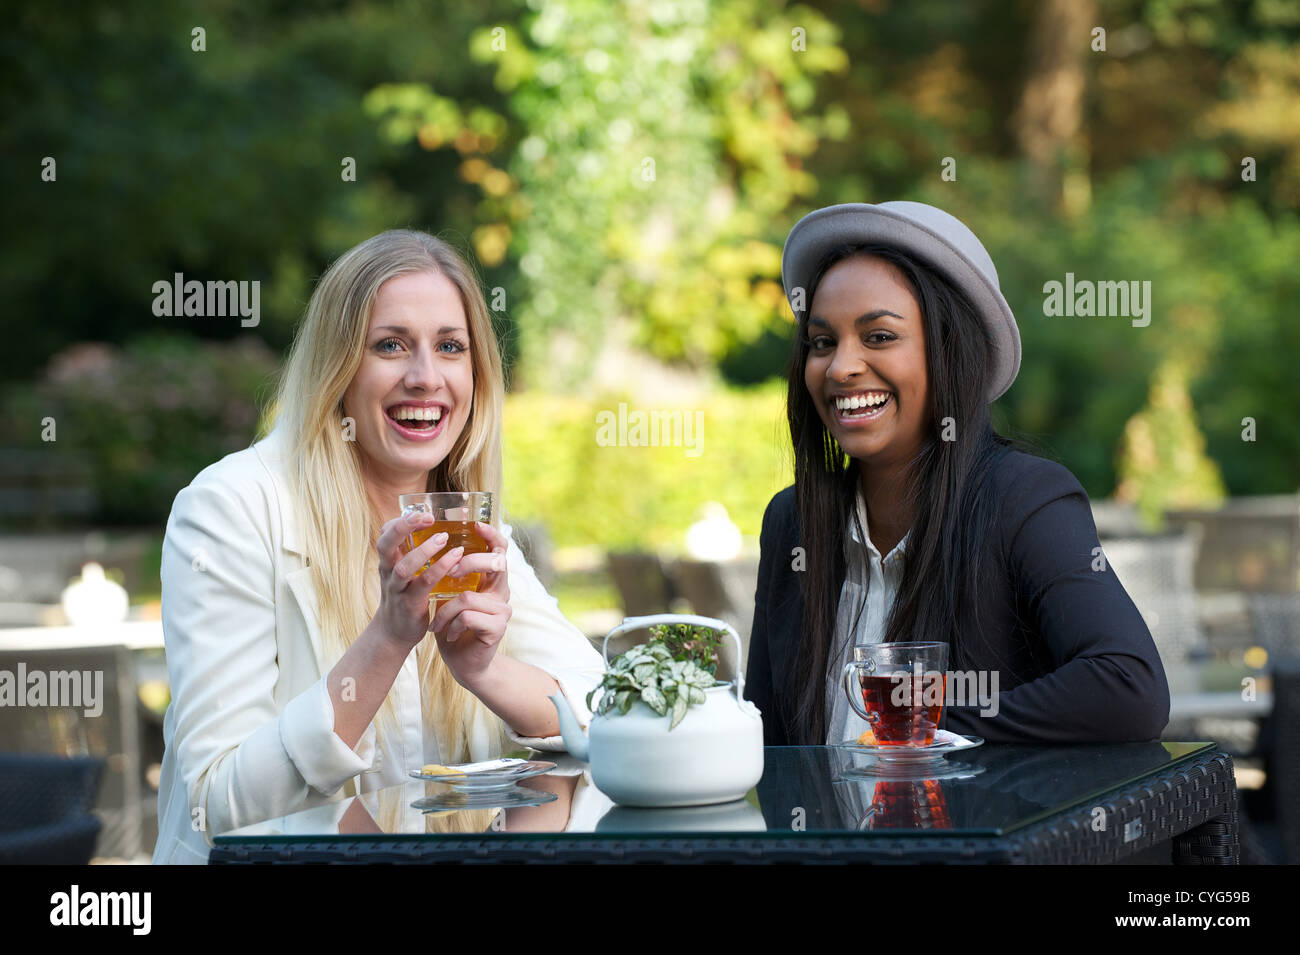 Two women friends laughing and having a good time while drinking tea outdoors - Stock Image